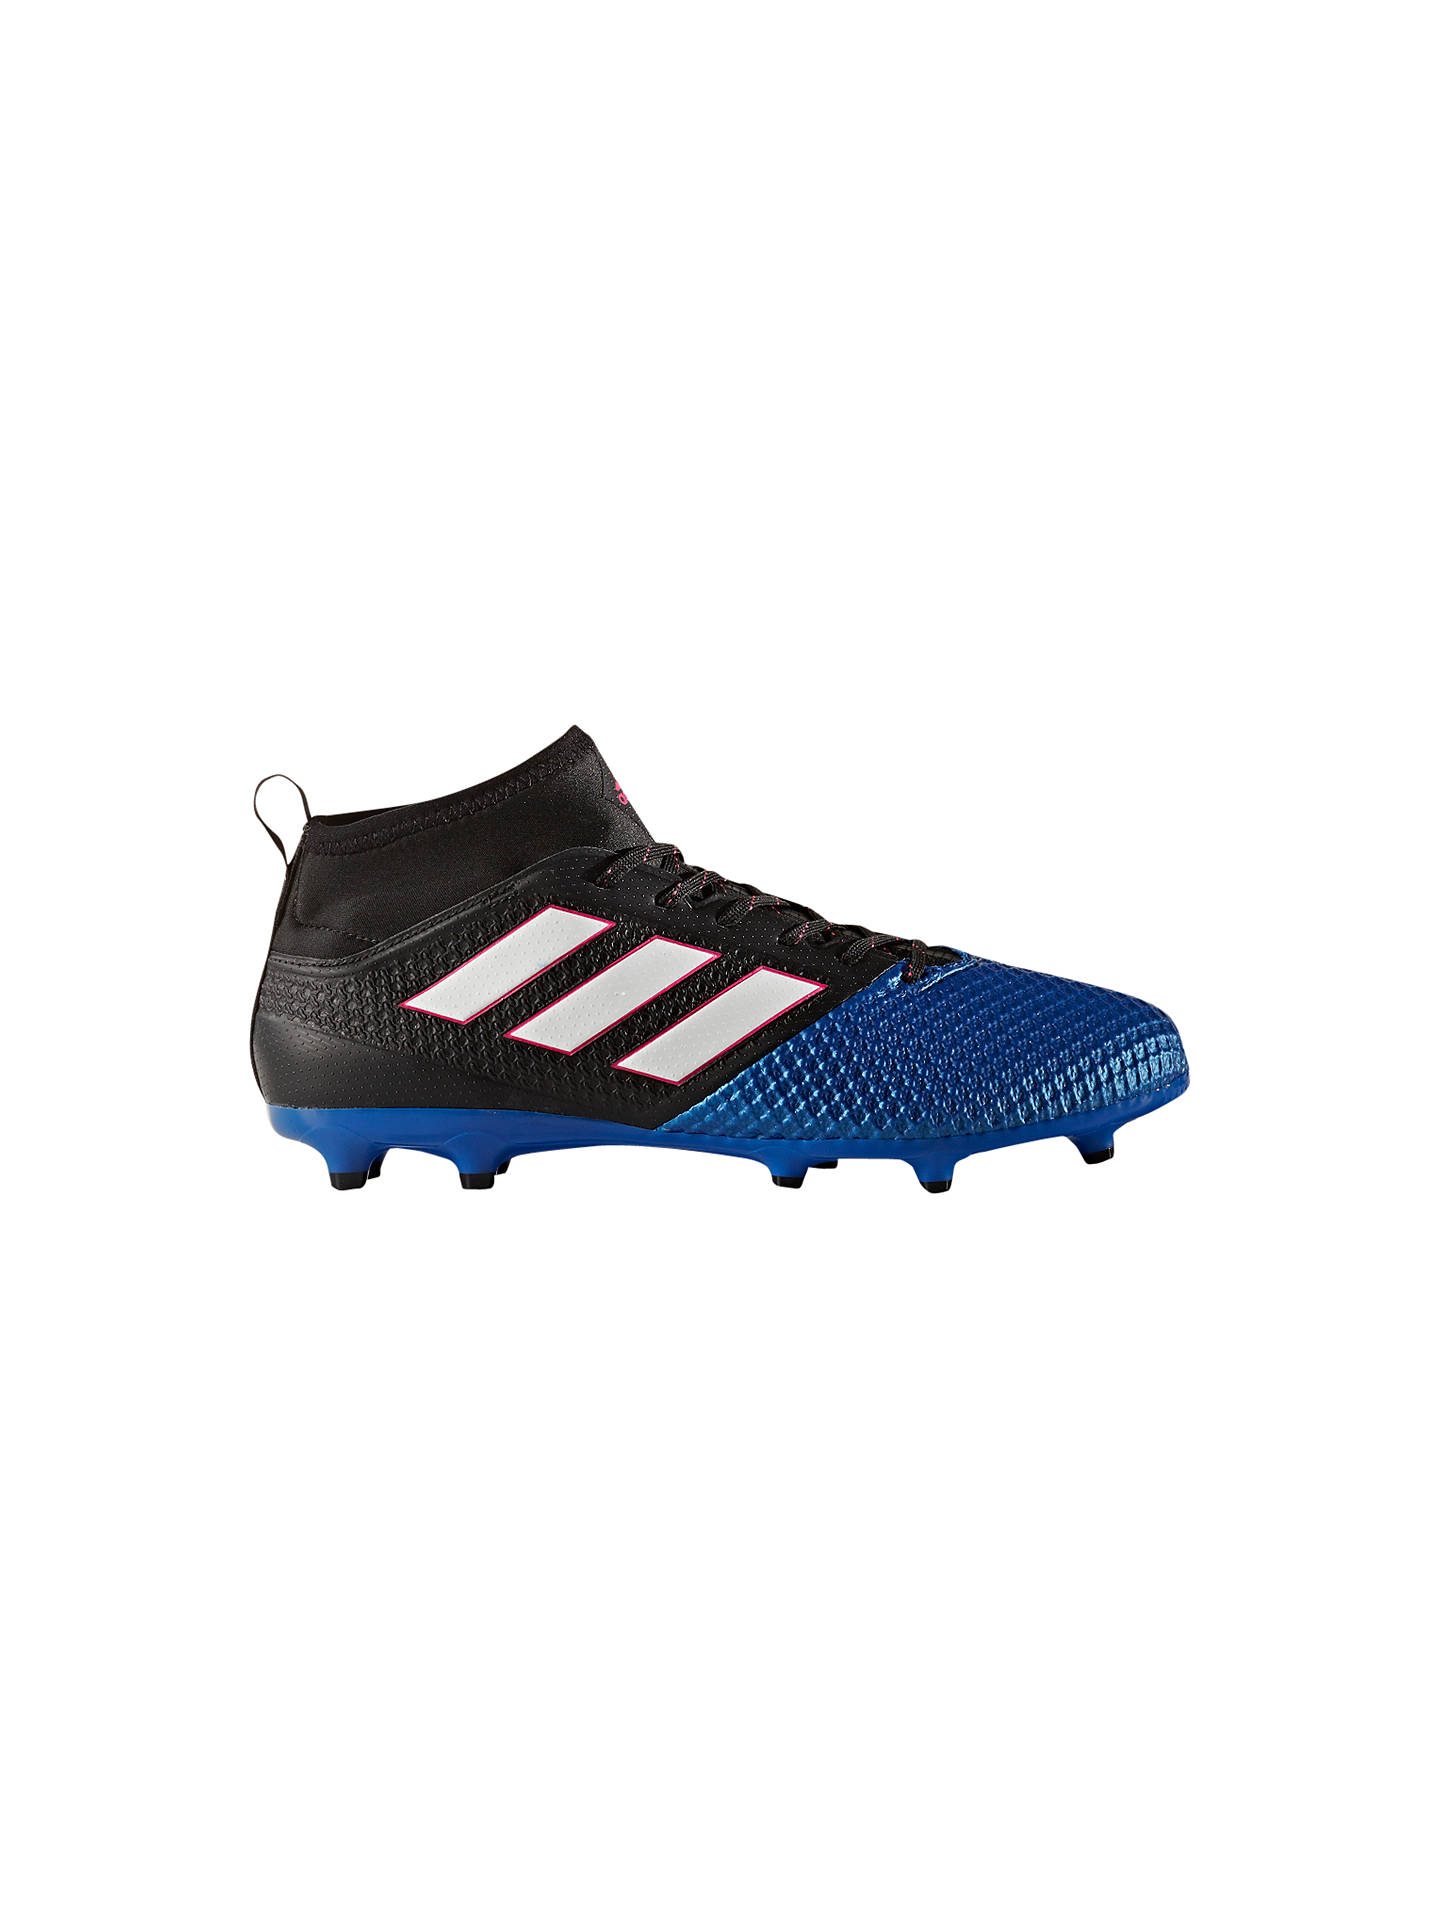 467915dd Buy Adidas Ace 17.3 Primemesh Men's Football Boots, Black/Blue, 7 Online at  ...